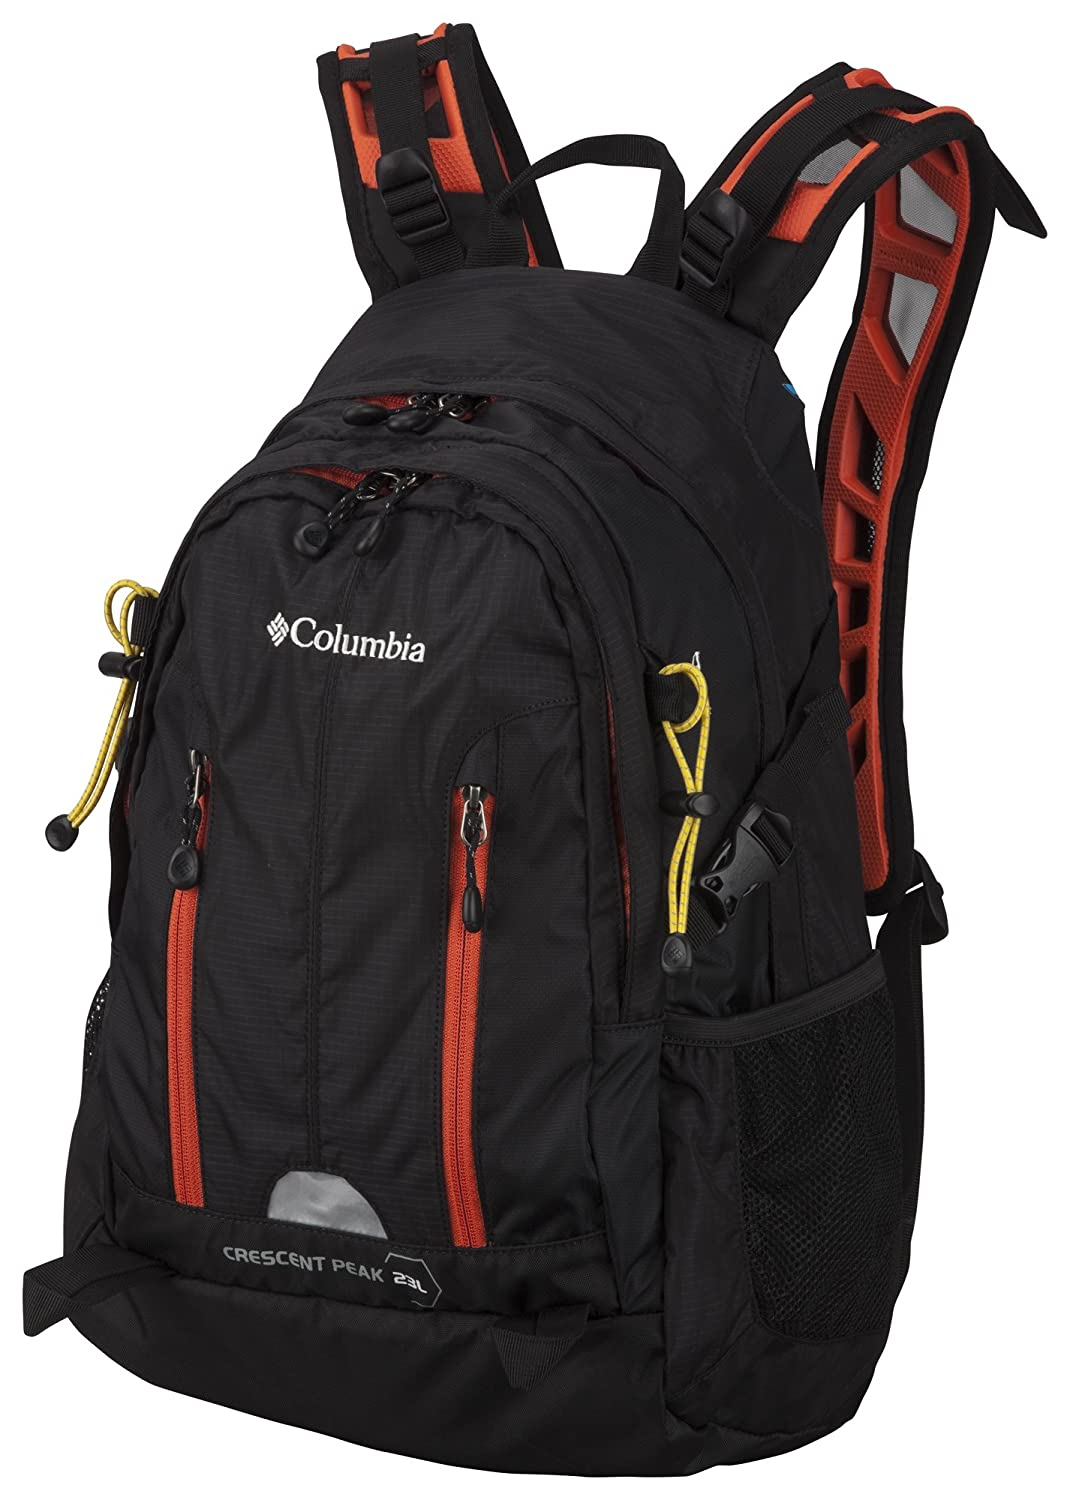 7e028a7233f3 Columbia Backpack 60l- Fenix Toulouse Handball